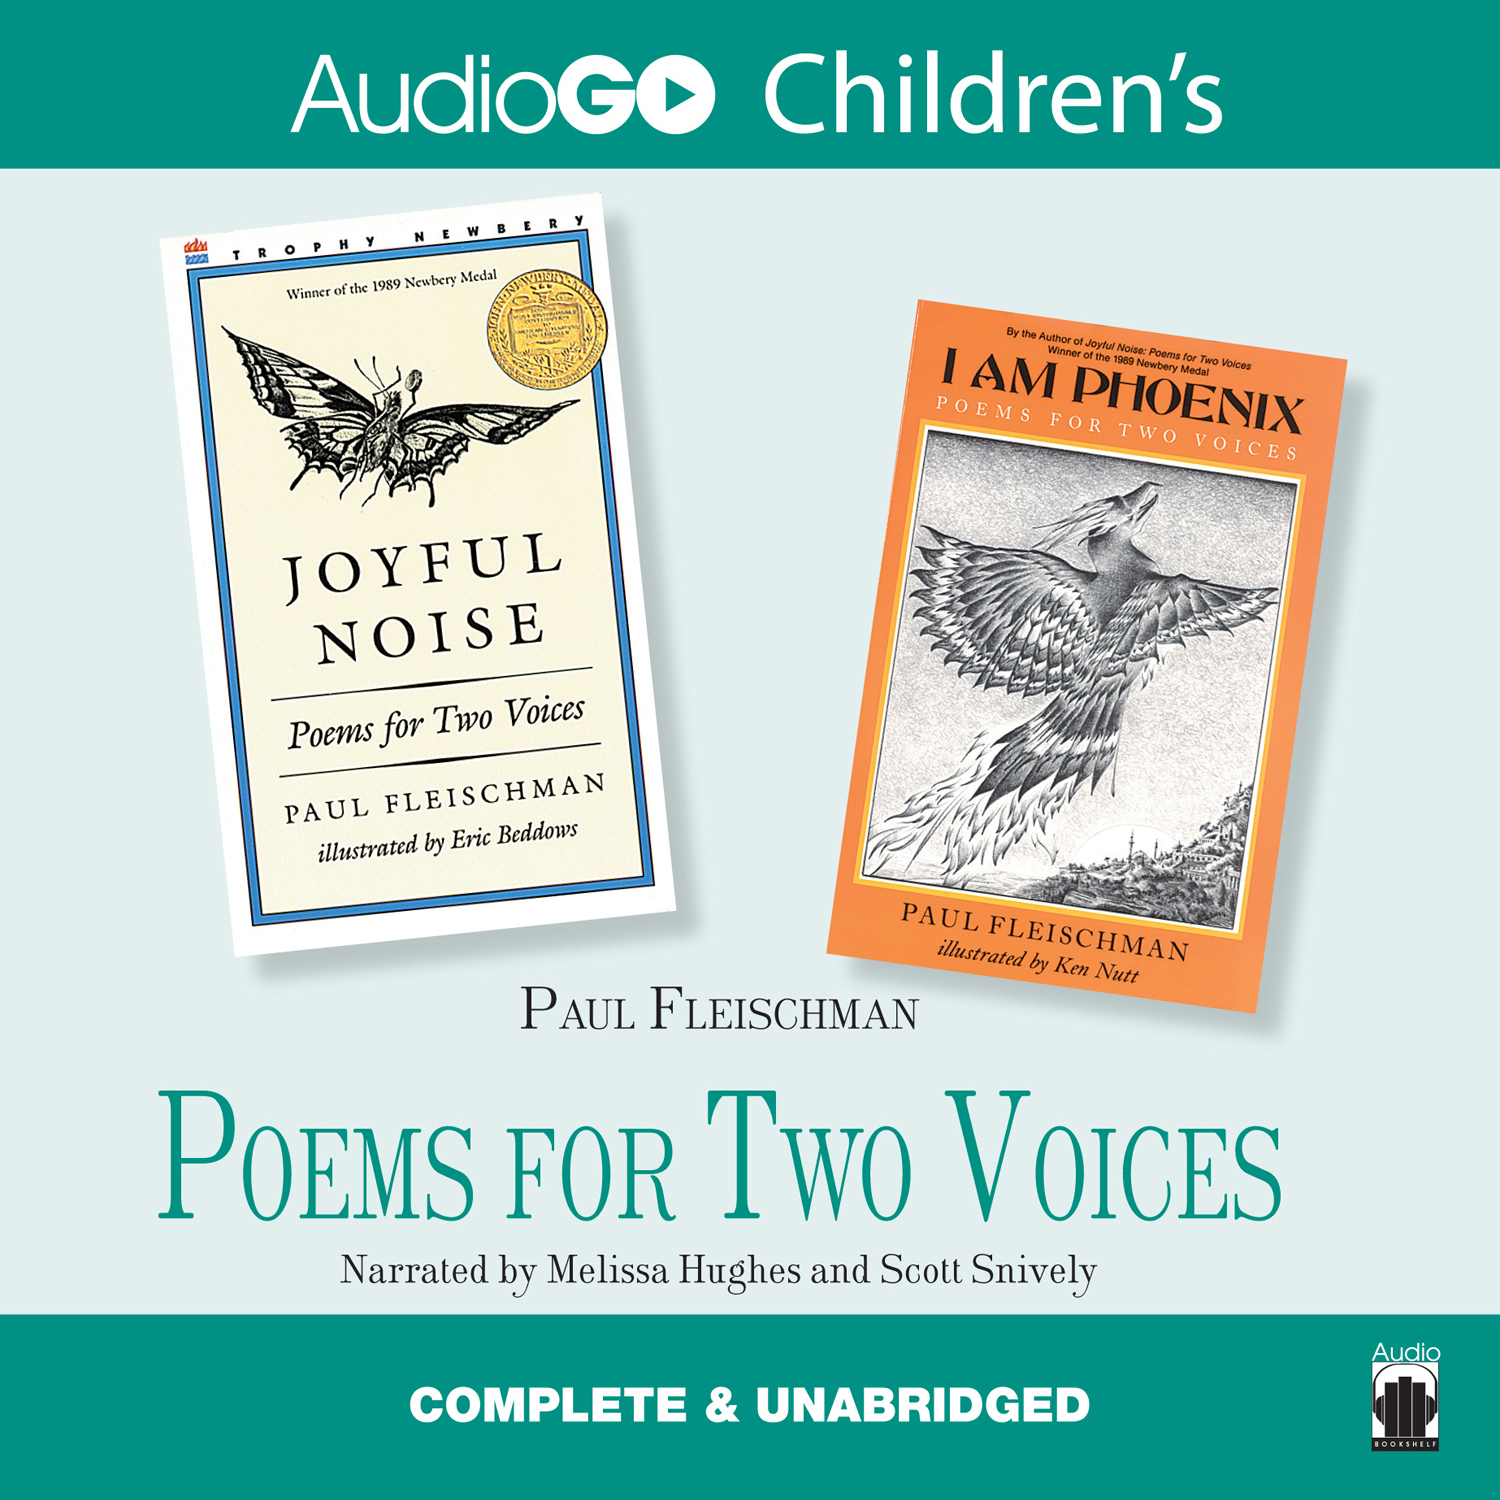 poem in two voices Joyful noise: poems for two voices by paul fleischman sounds like a gospel hymnal my grandmother would have carried to church each sunday, but after glancing at the cover, you will find that those sounds come from nature's creation, called insects.